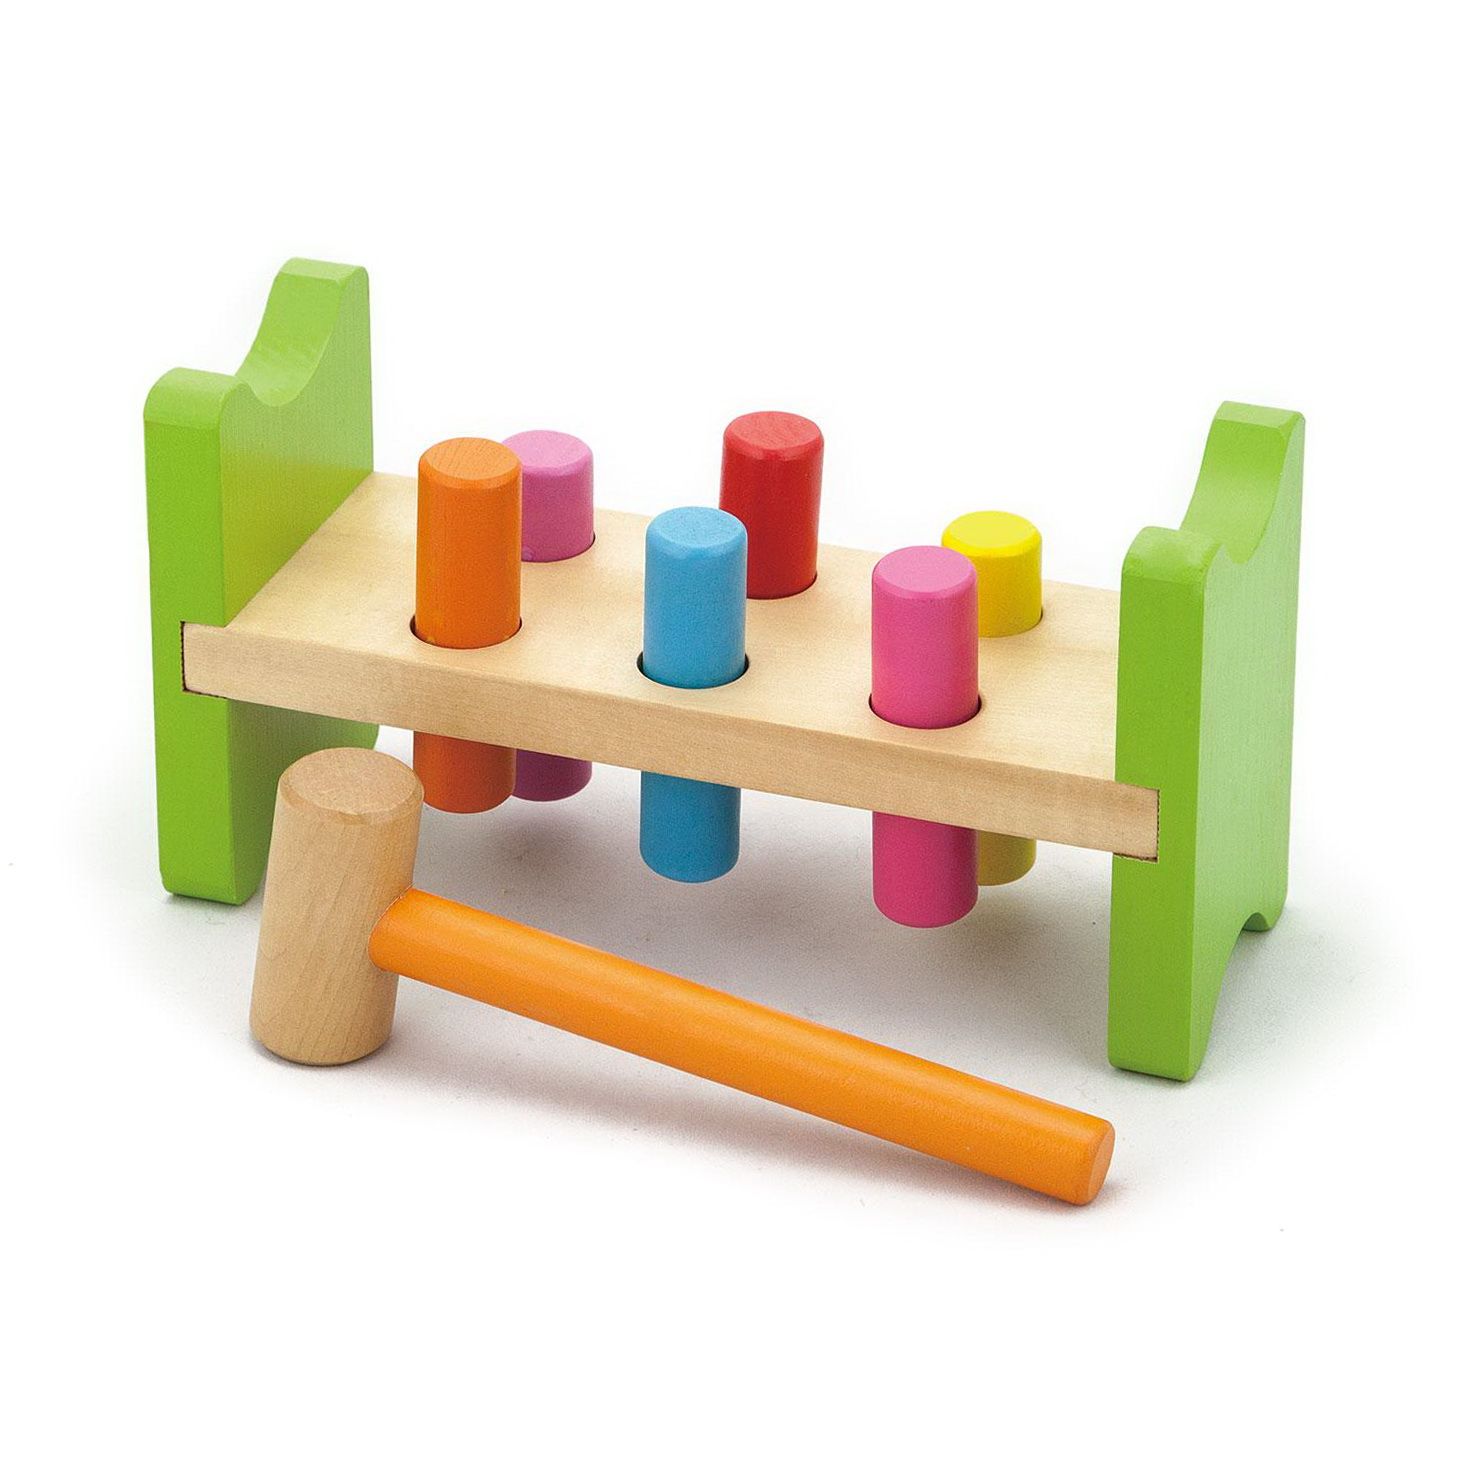 Wooden Work Bench Toy